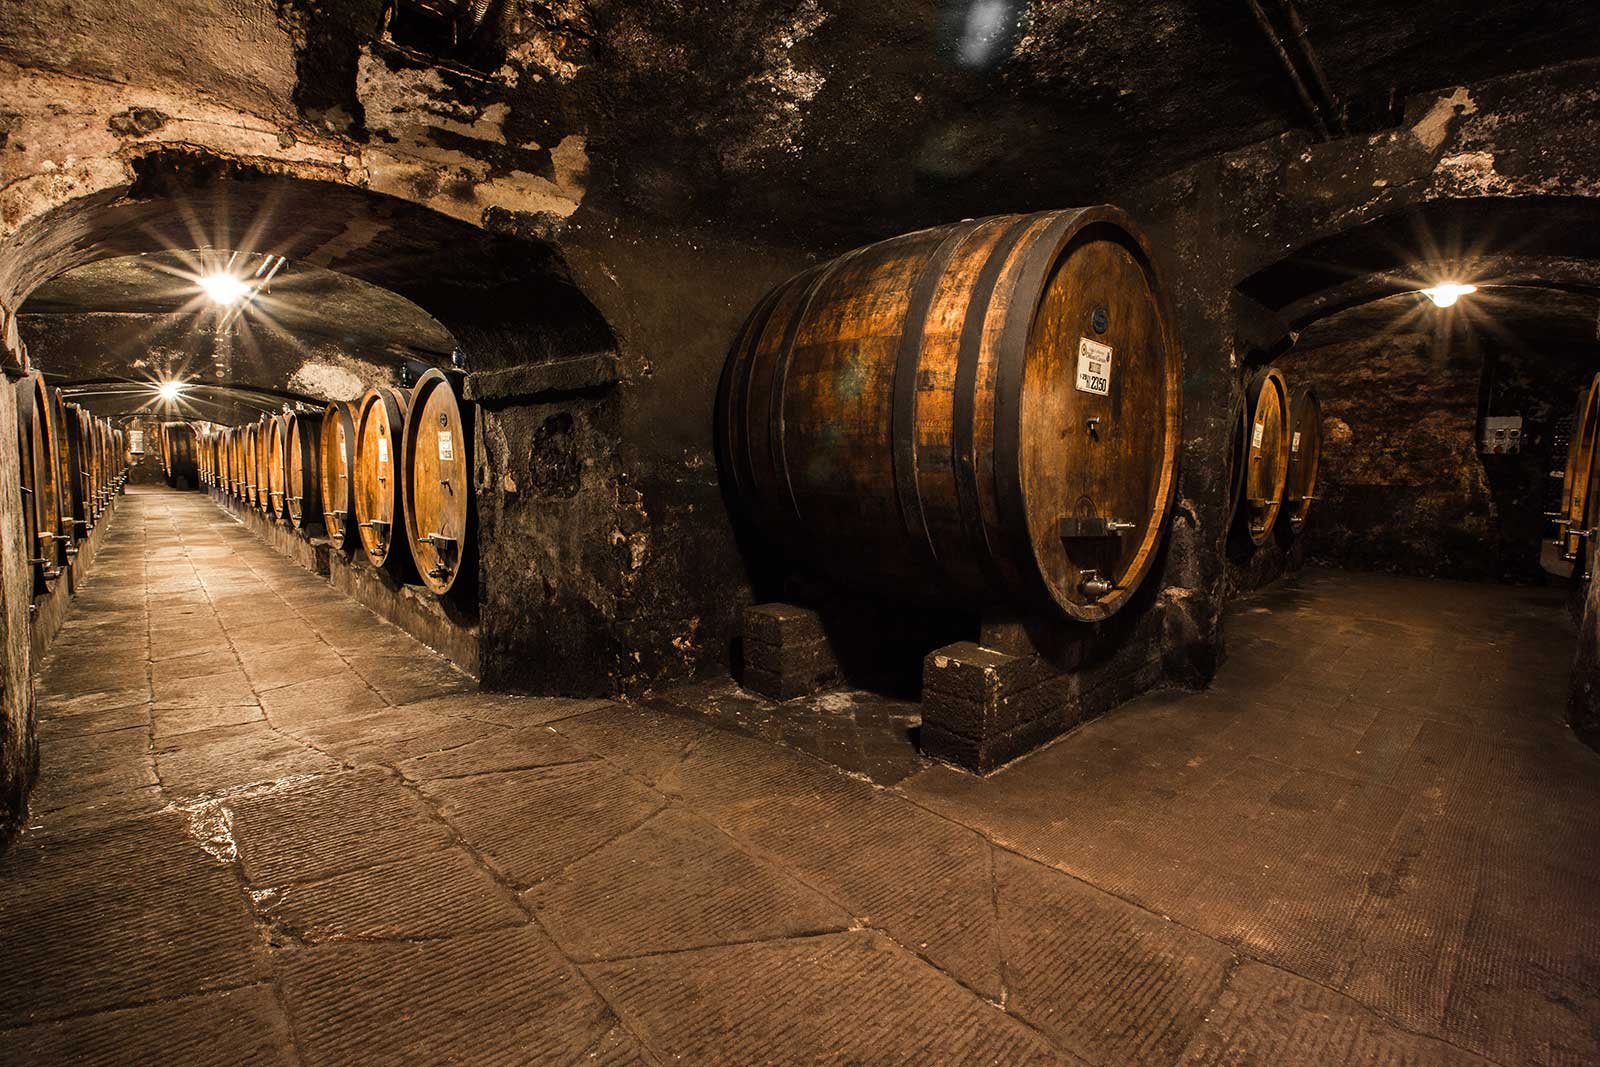 The ancient cellar at Badia a Coltibuono. Oak aging — whether in large casks or small barrels — has a major influence on the final wine, but the choice is ultimately up to the producer. ©Badia a Coltibuono